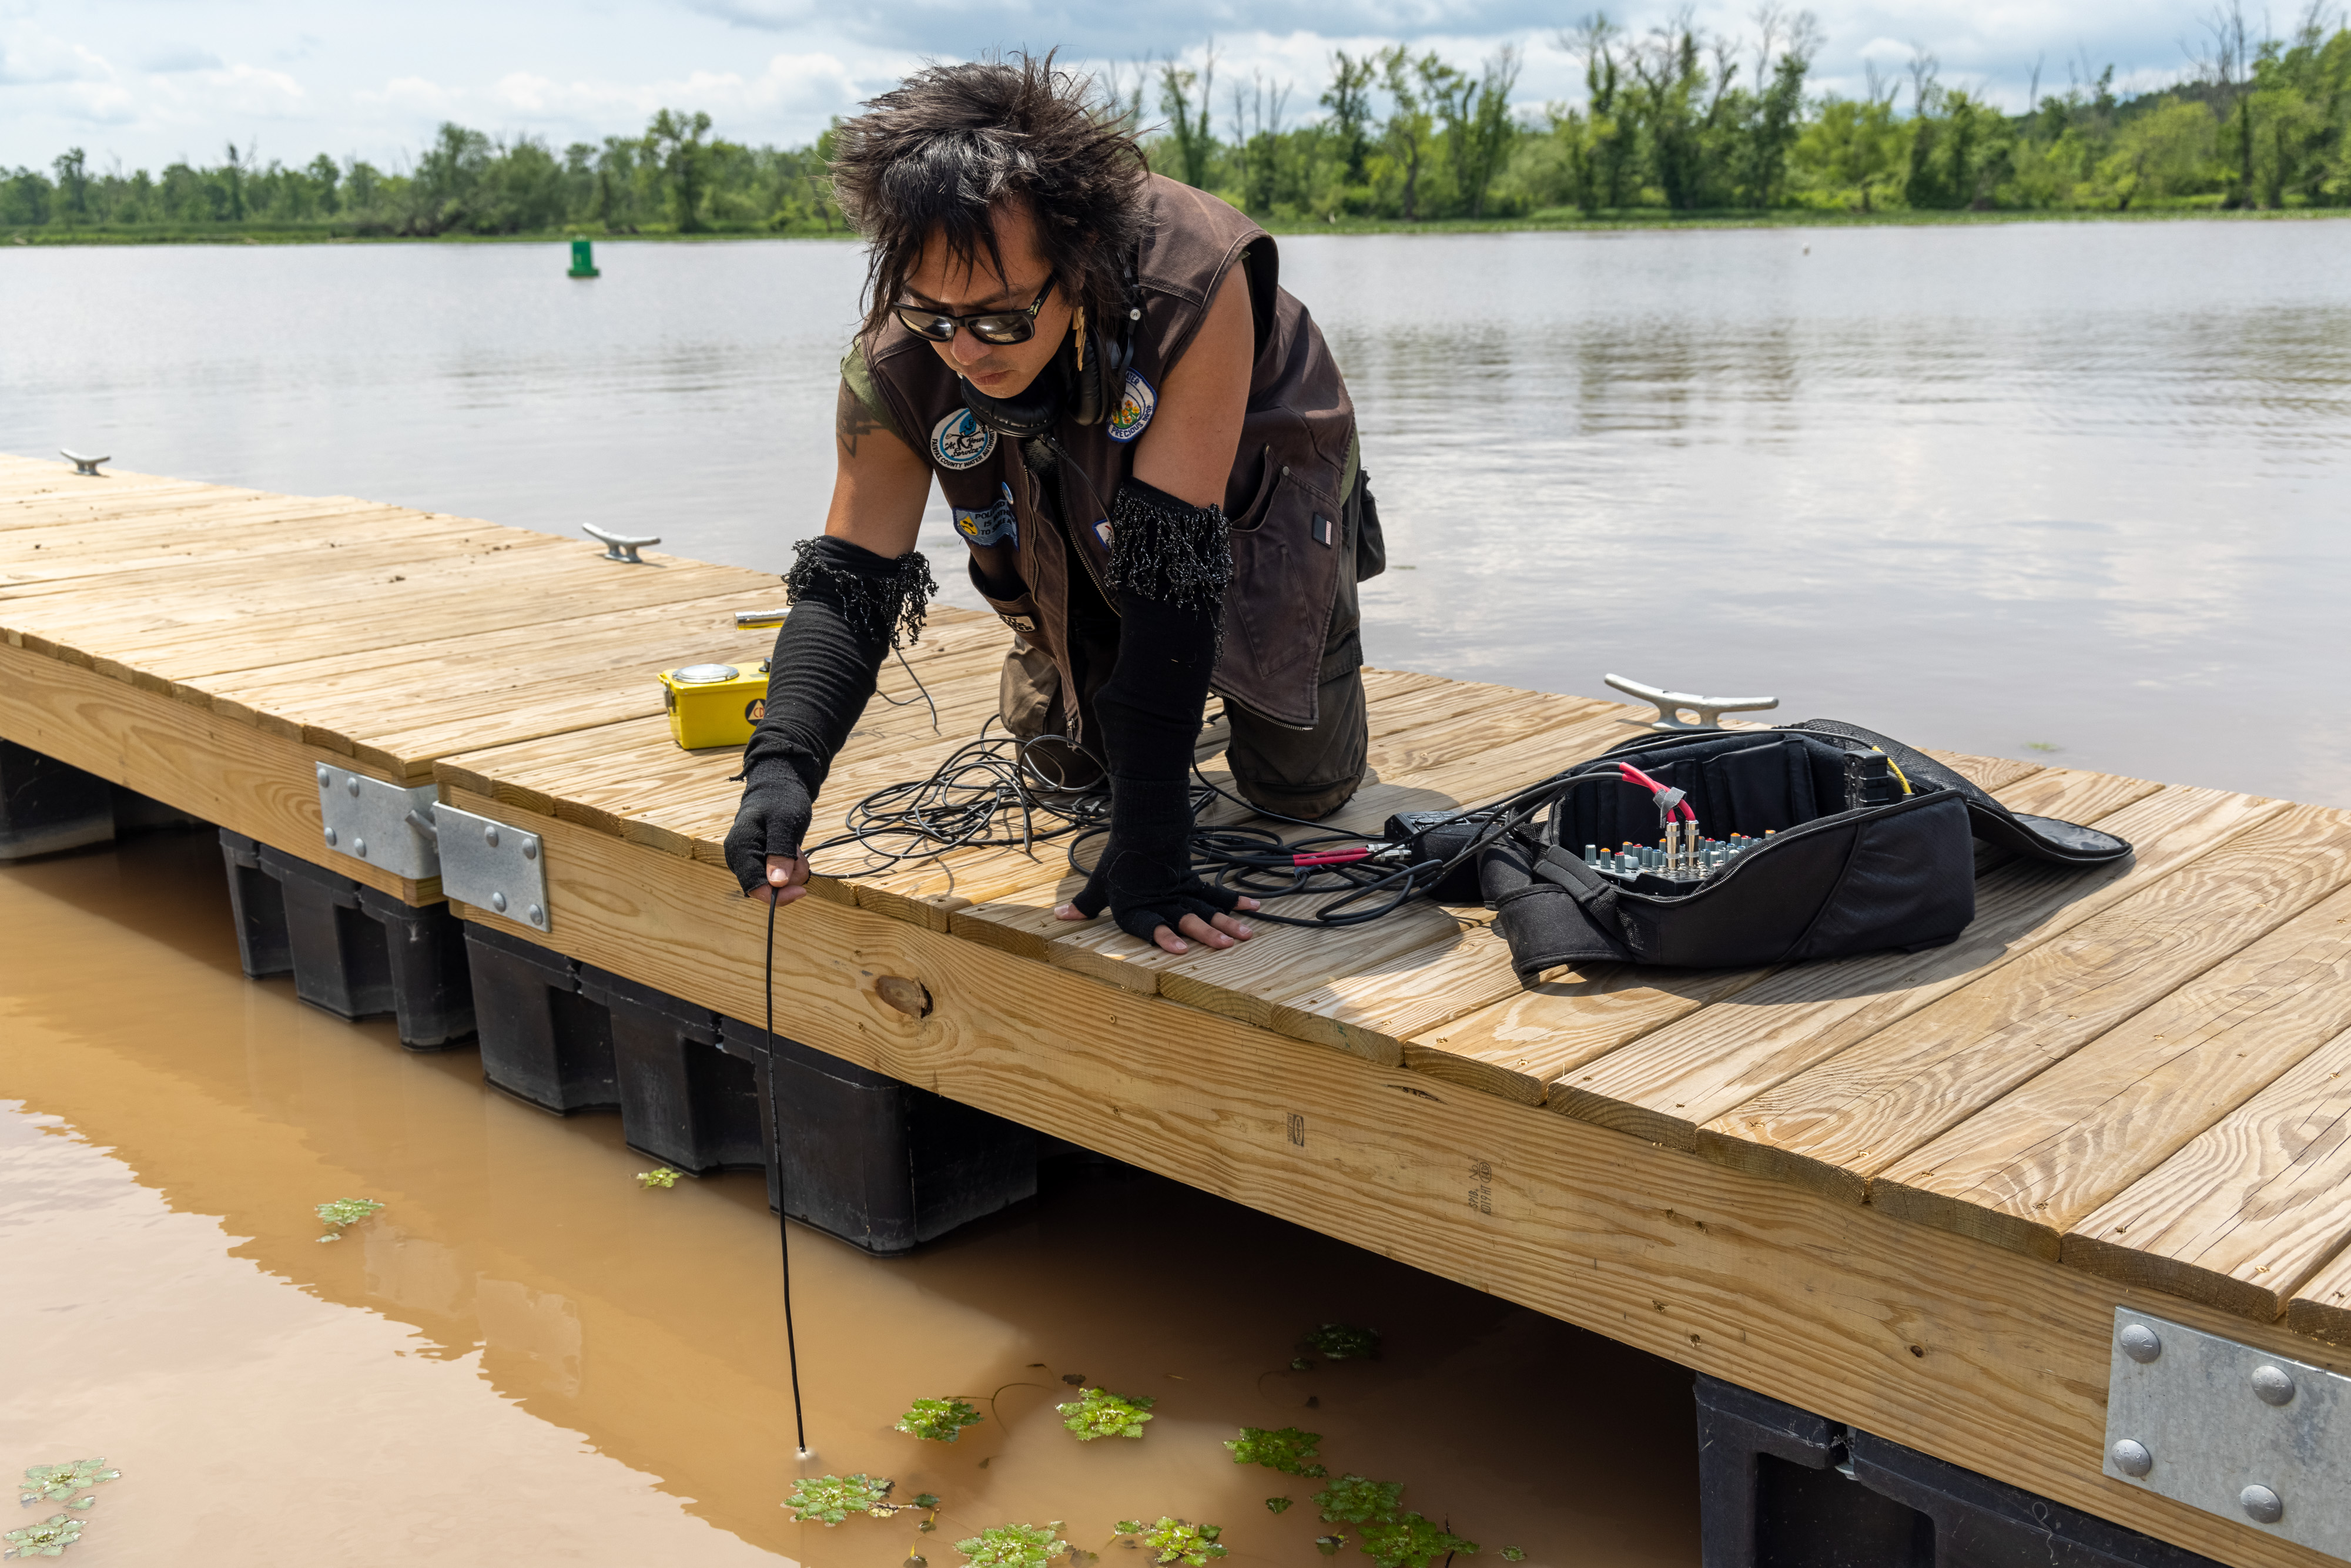 sTo Len Recording the Hudson River during his Wave Farm Residency (3)